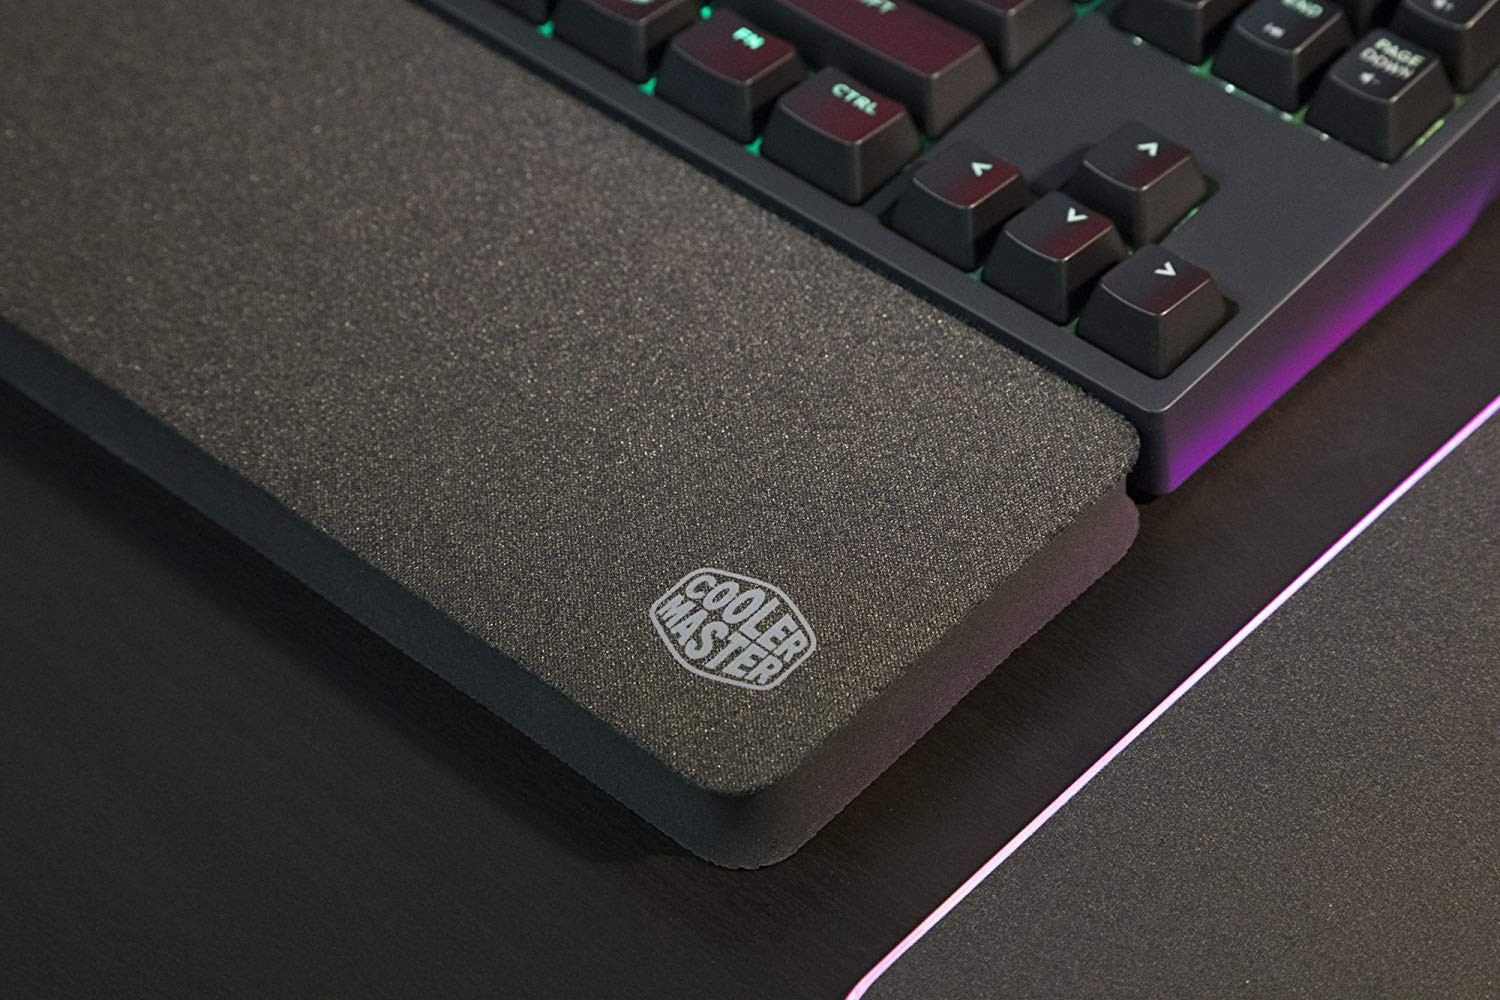 COOLER MASTER MASTERACCESSORY WR530 SIZE SMALL WRIST REST PAD FOR KEYBOARD